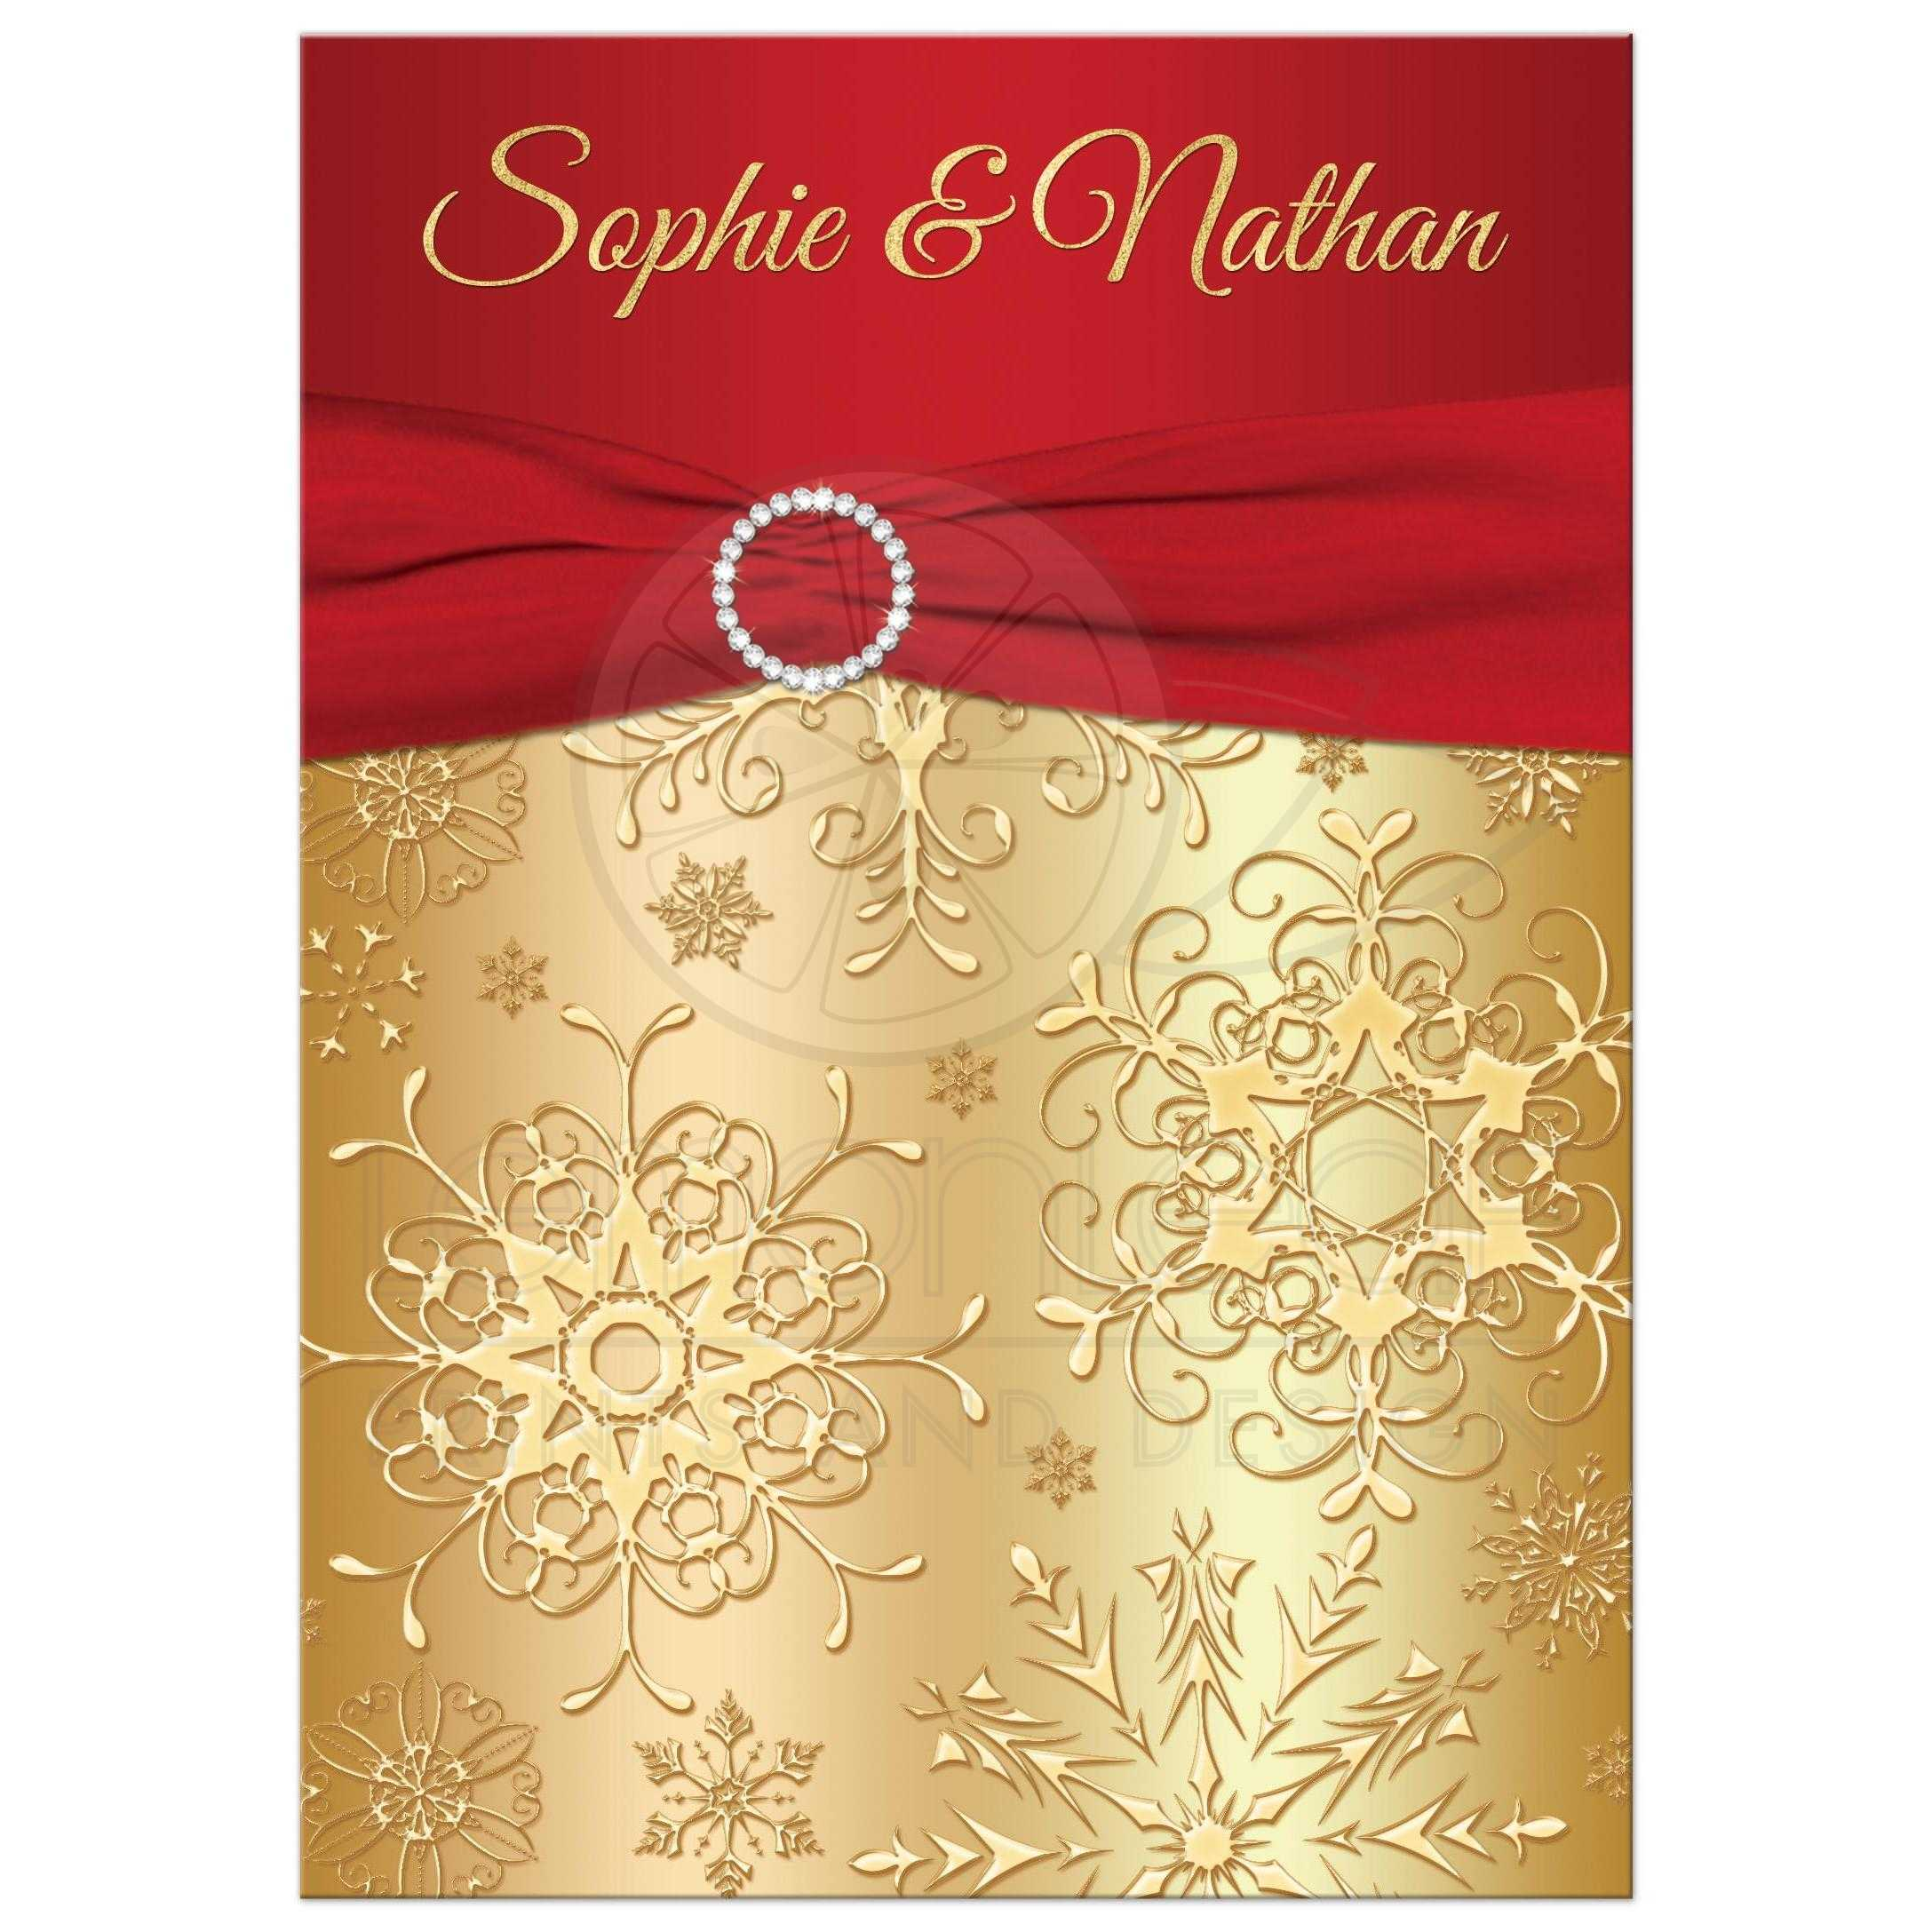 invitation rhinestone wedding elegant with lace p embellished invitations brooch ivory